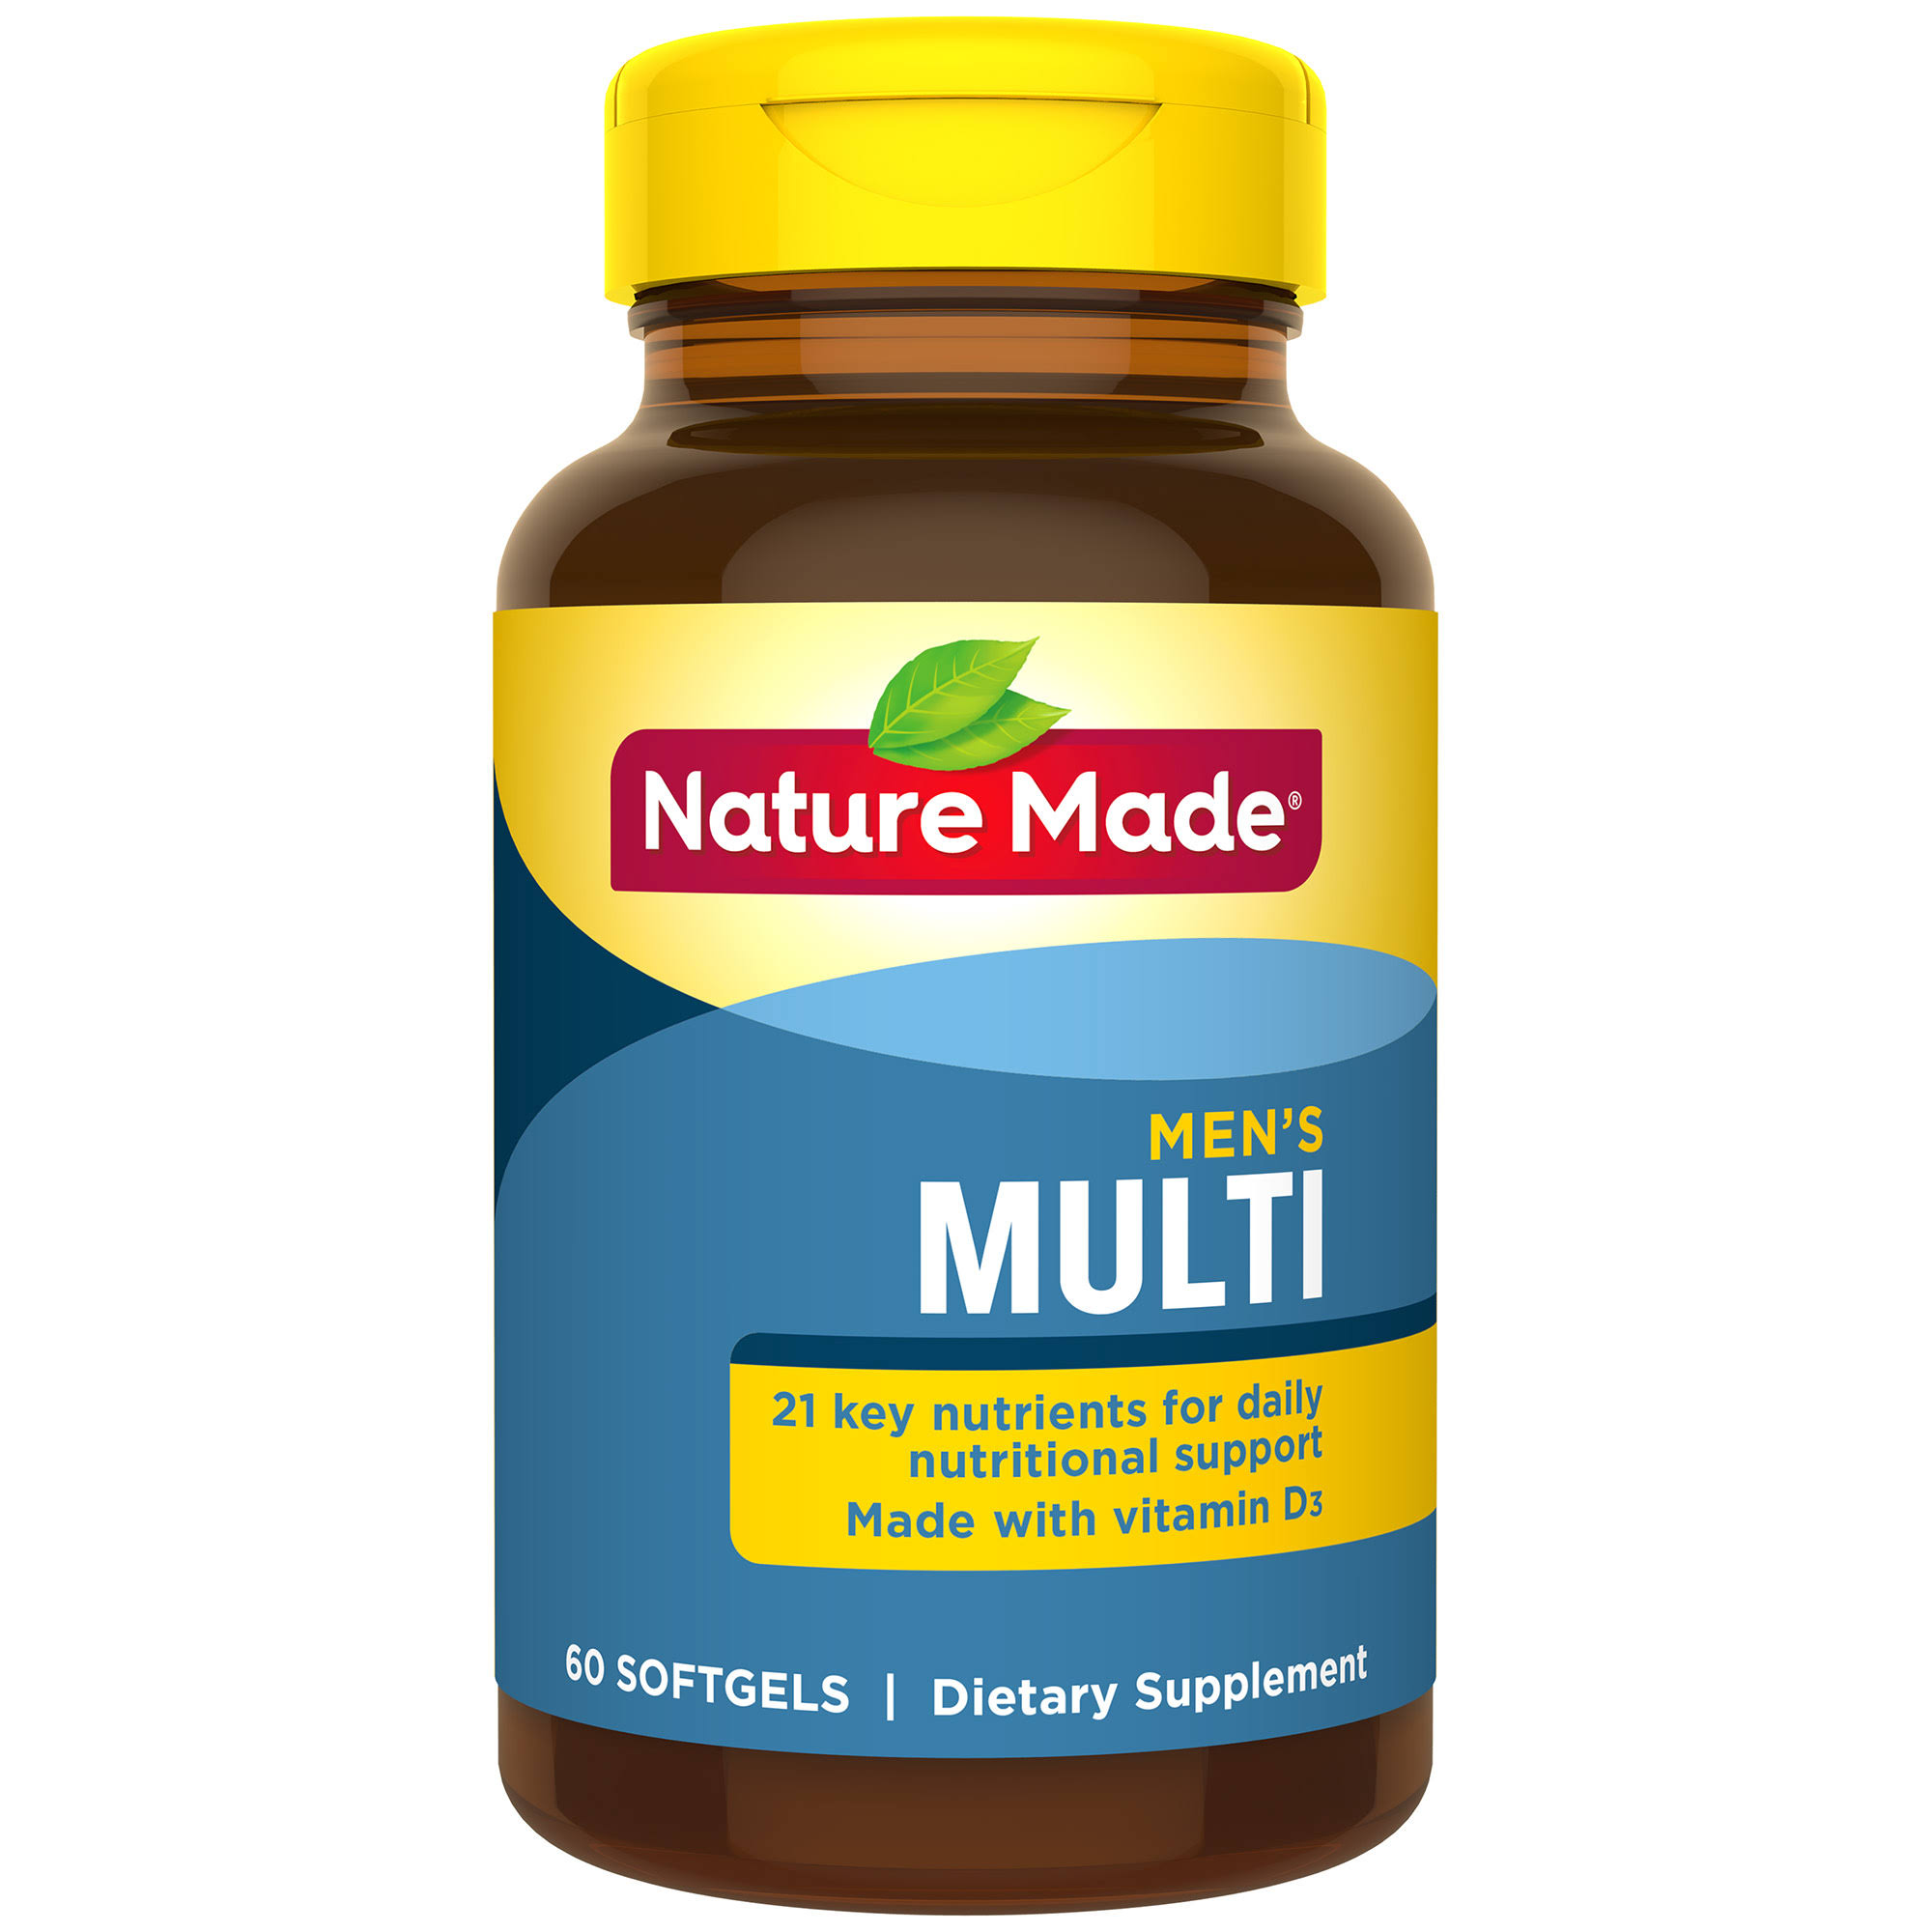 Nature Made Multi For Him - 60 Softgels